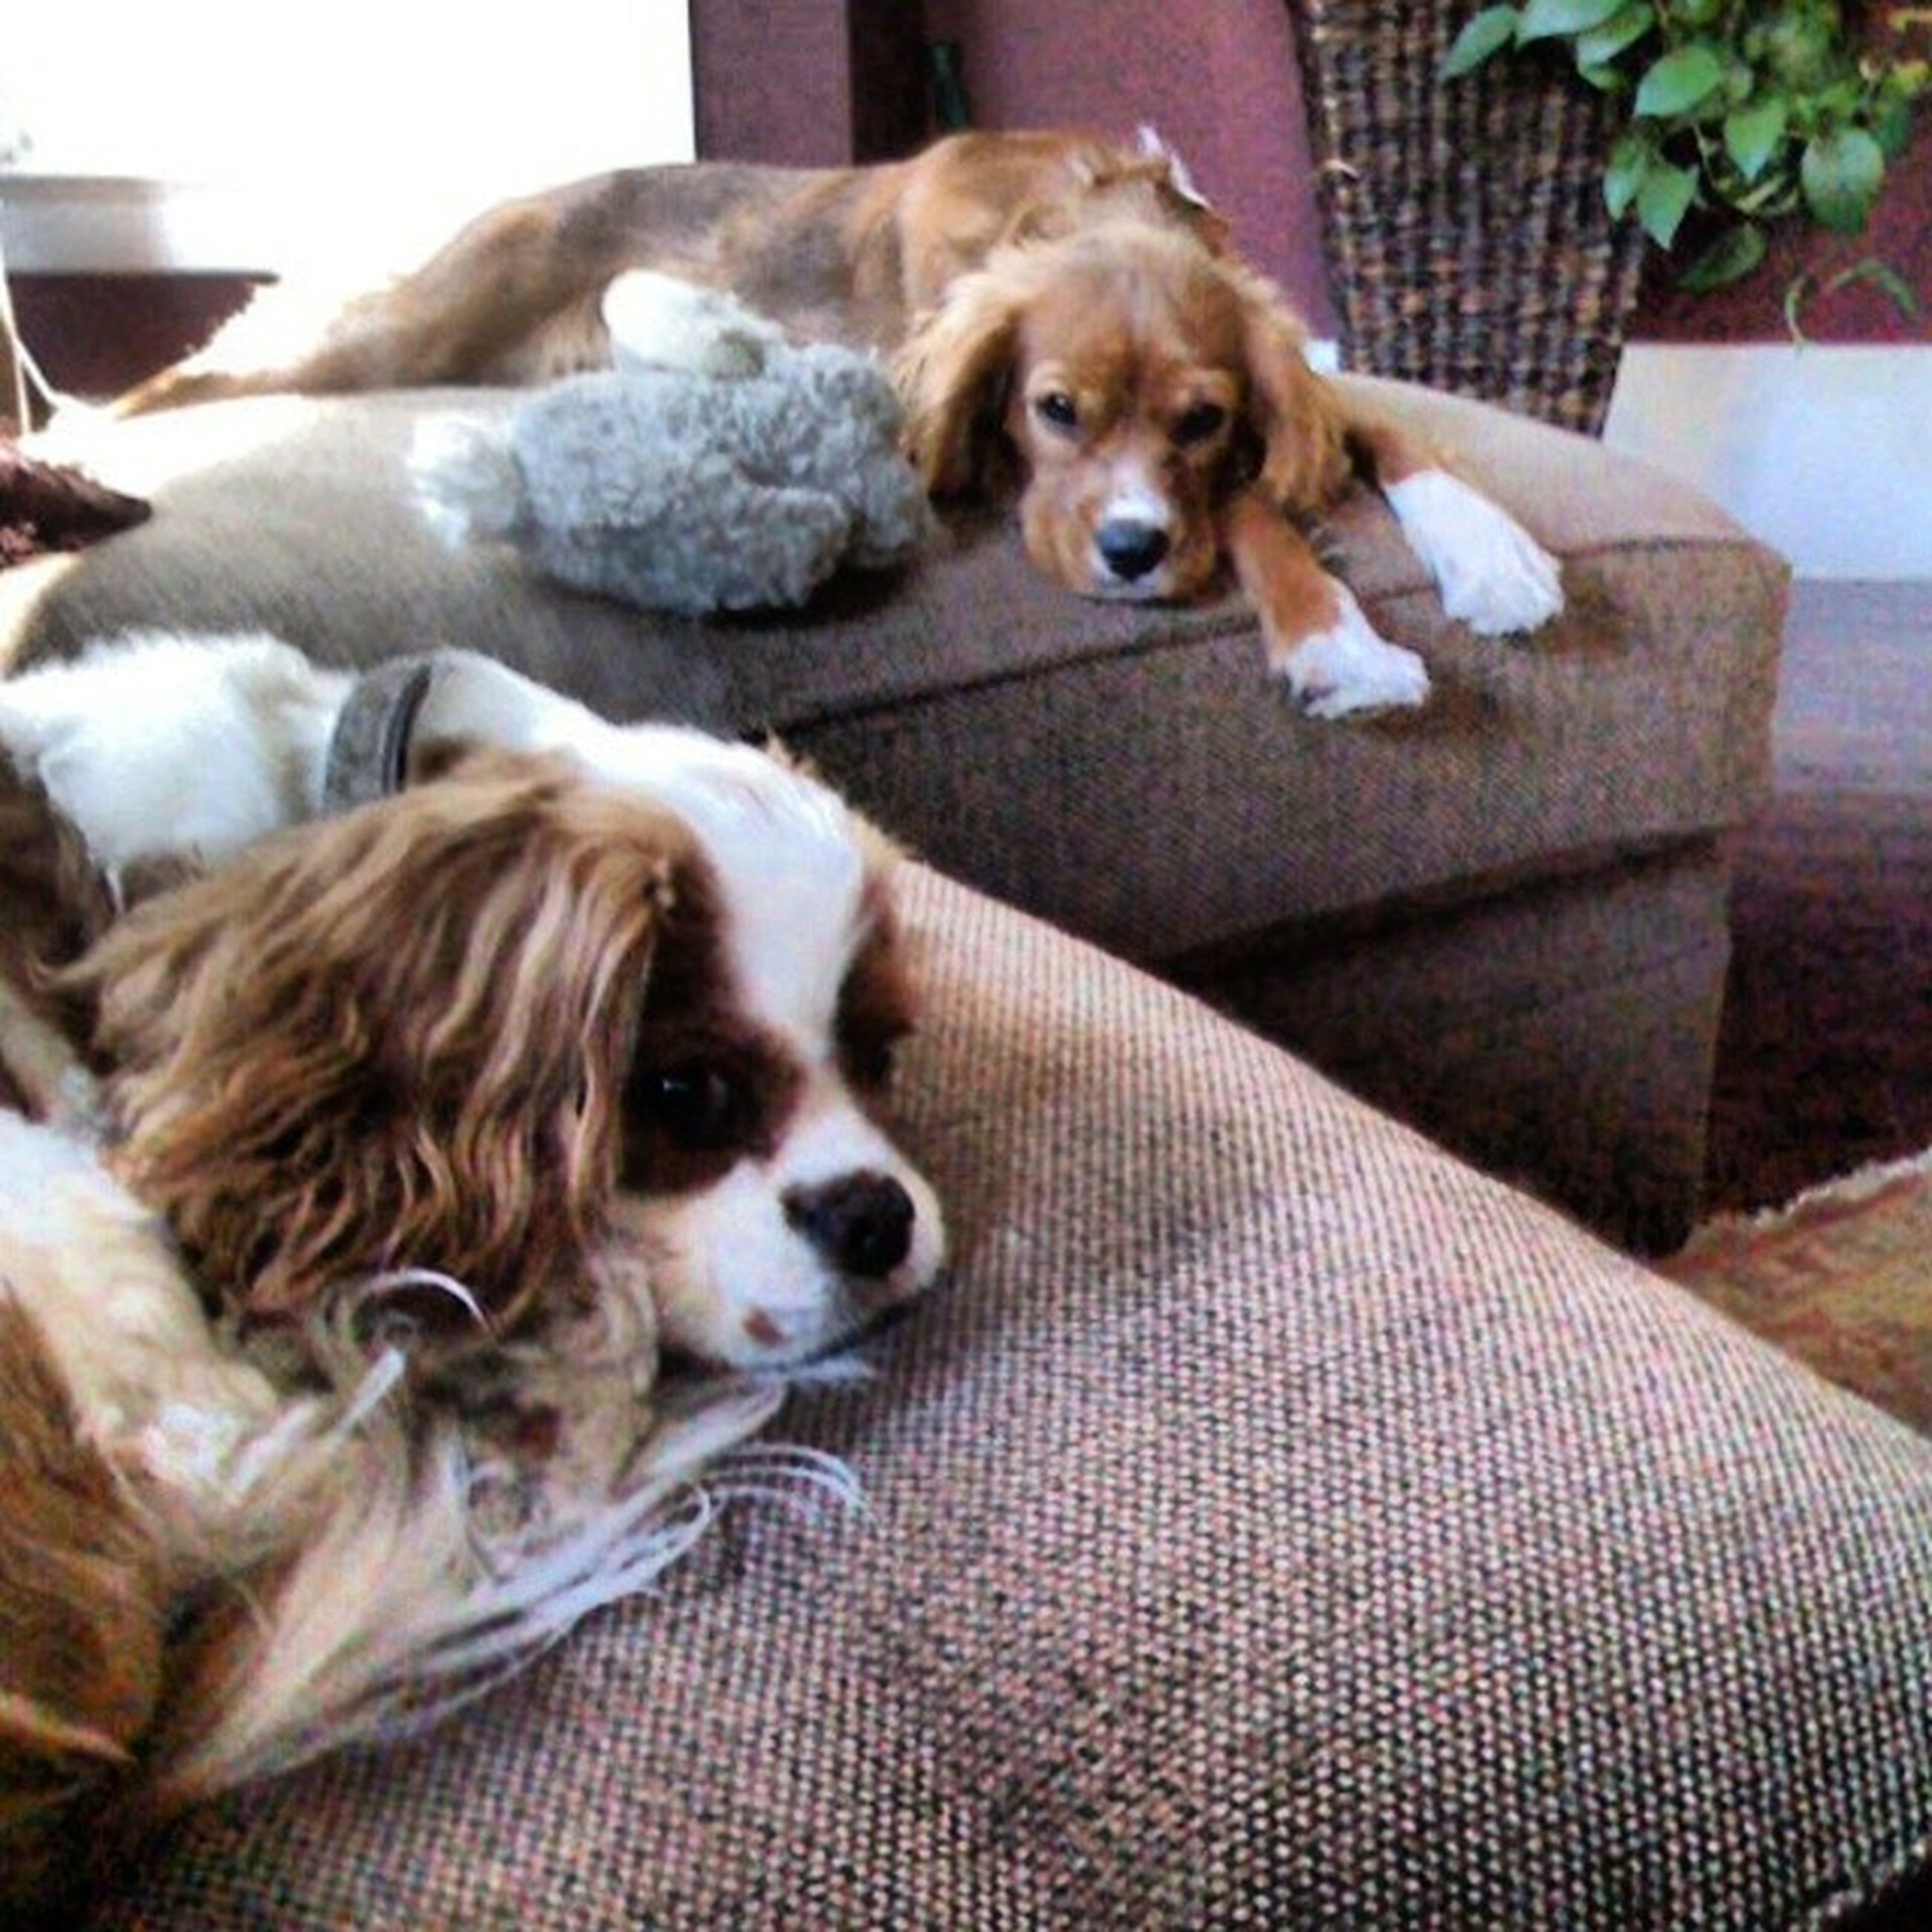 pets, domestic animals, dog, one animal, animal themes, mammal, indoors, relaxation, portrait, home interior, looking at camera, resting, bed, lying down, sofa, no people, home, sitting, close-up, high angle view